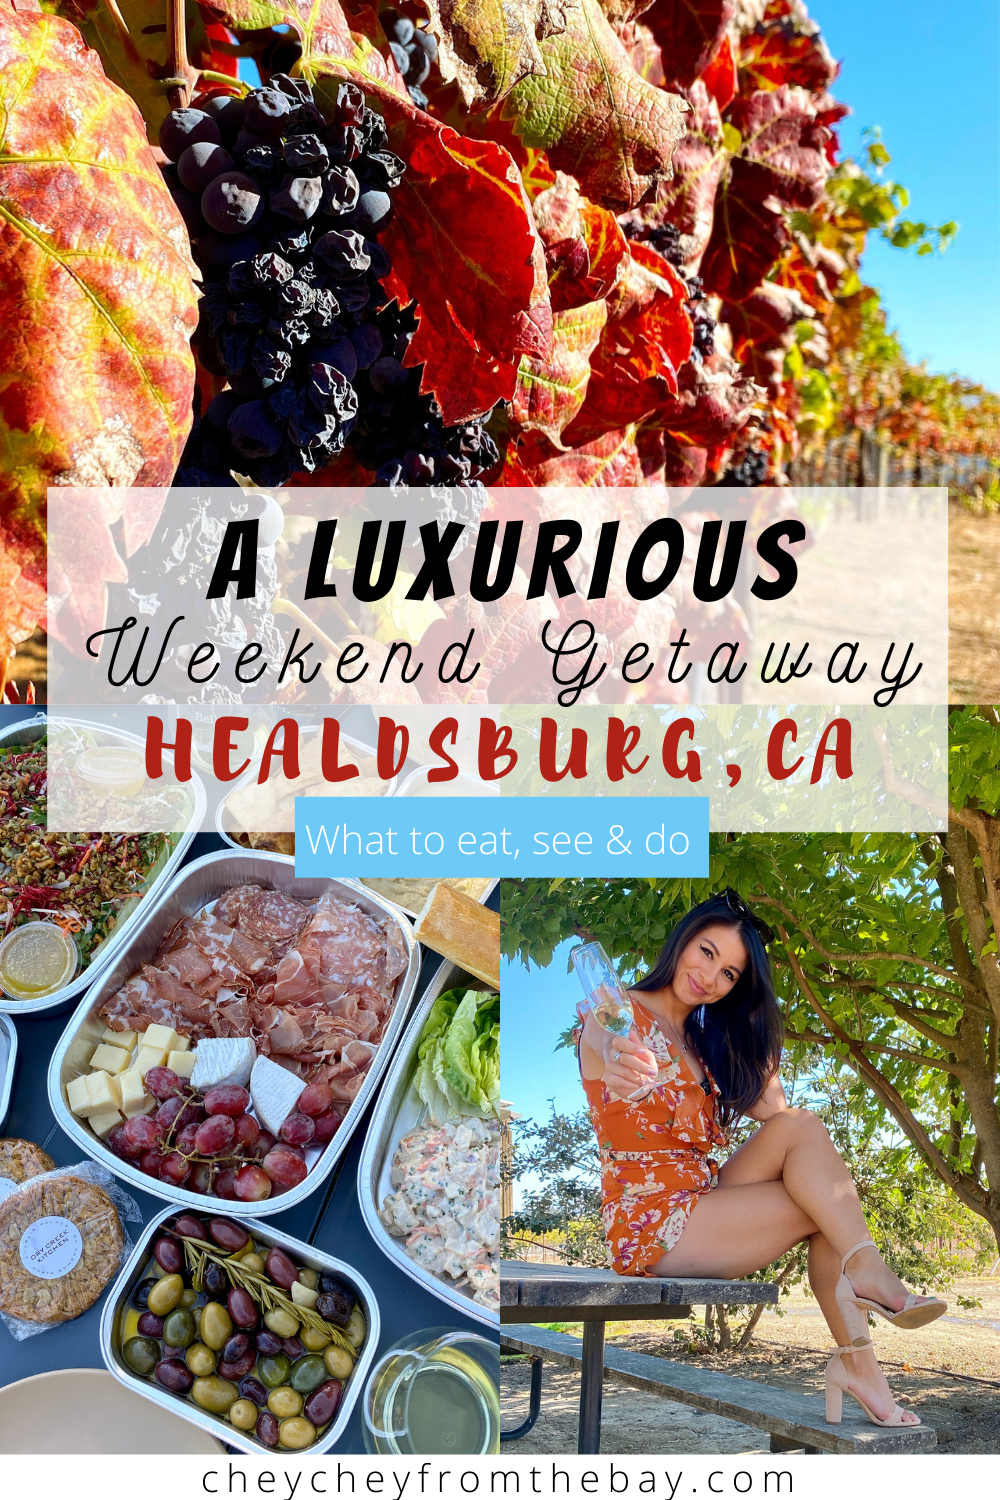 Here's your 48 hour guide to a luxurious weekend getaway in Healdsburg, California! Wineries, hikes, delicious food and more awaits visitors!